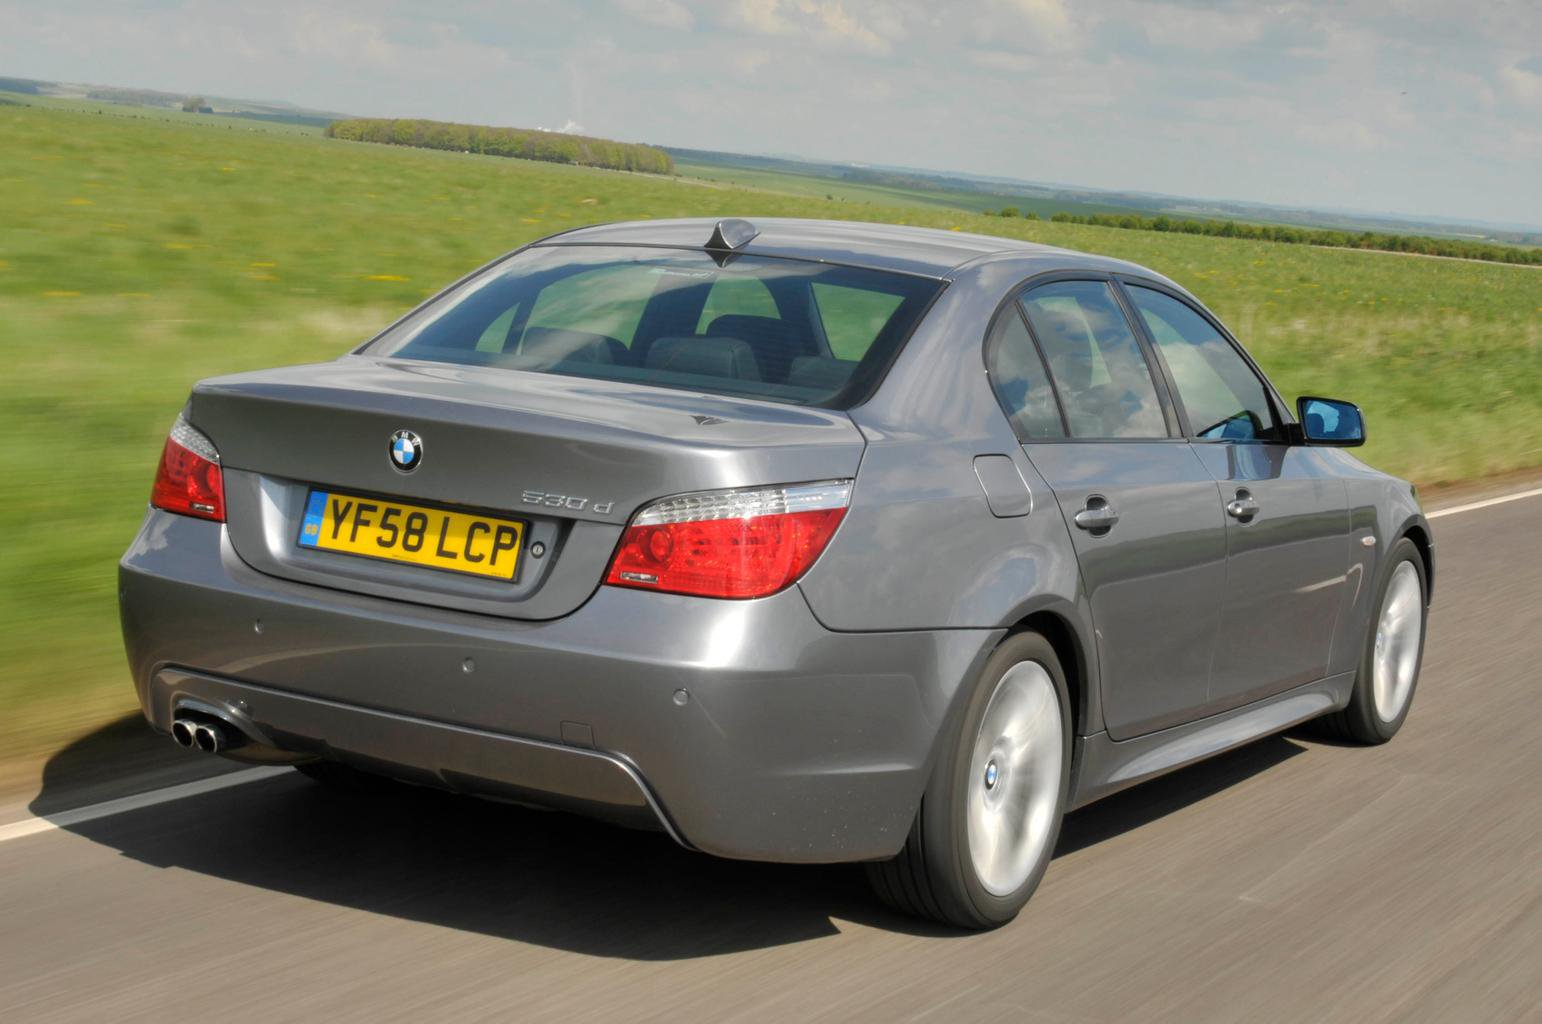 Used BMW 5 Series Review - 2003-2010 Reliability, Common